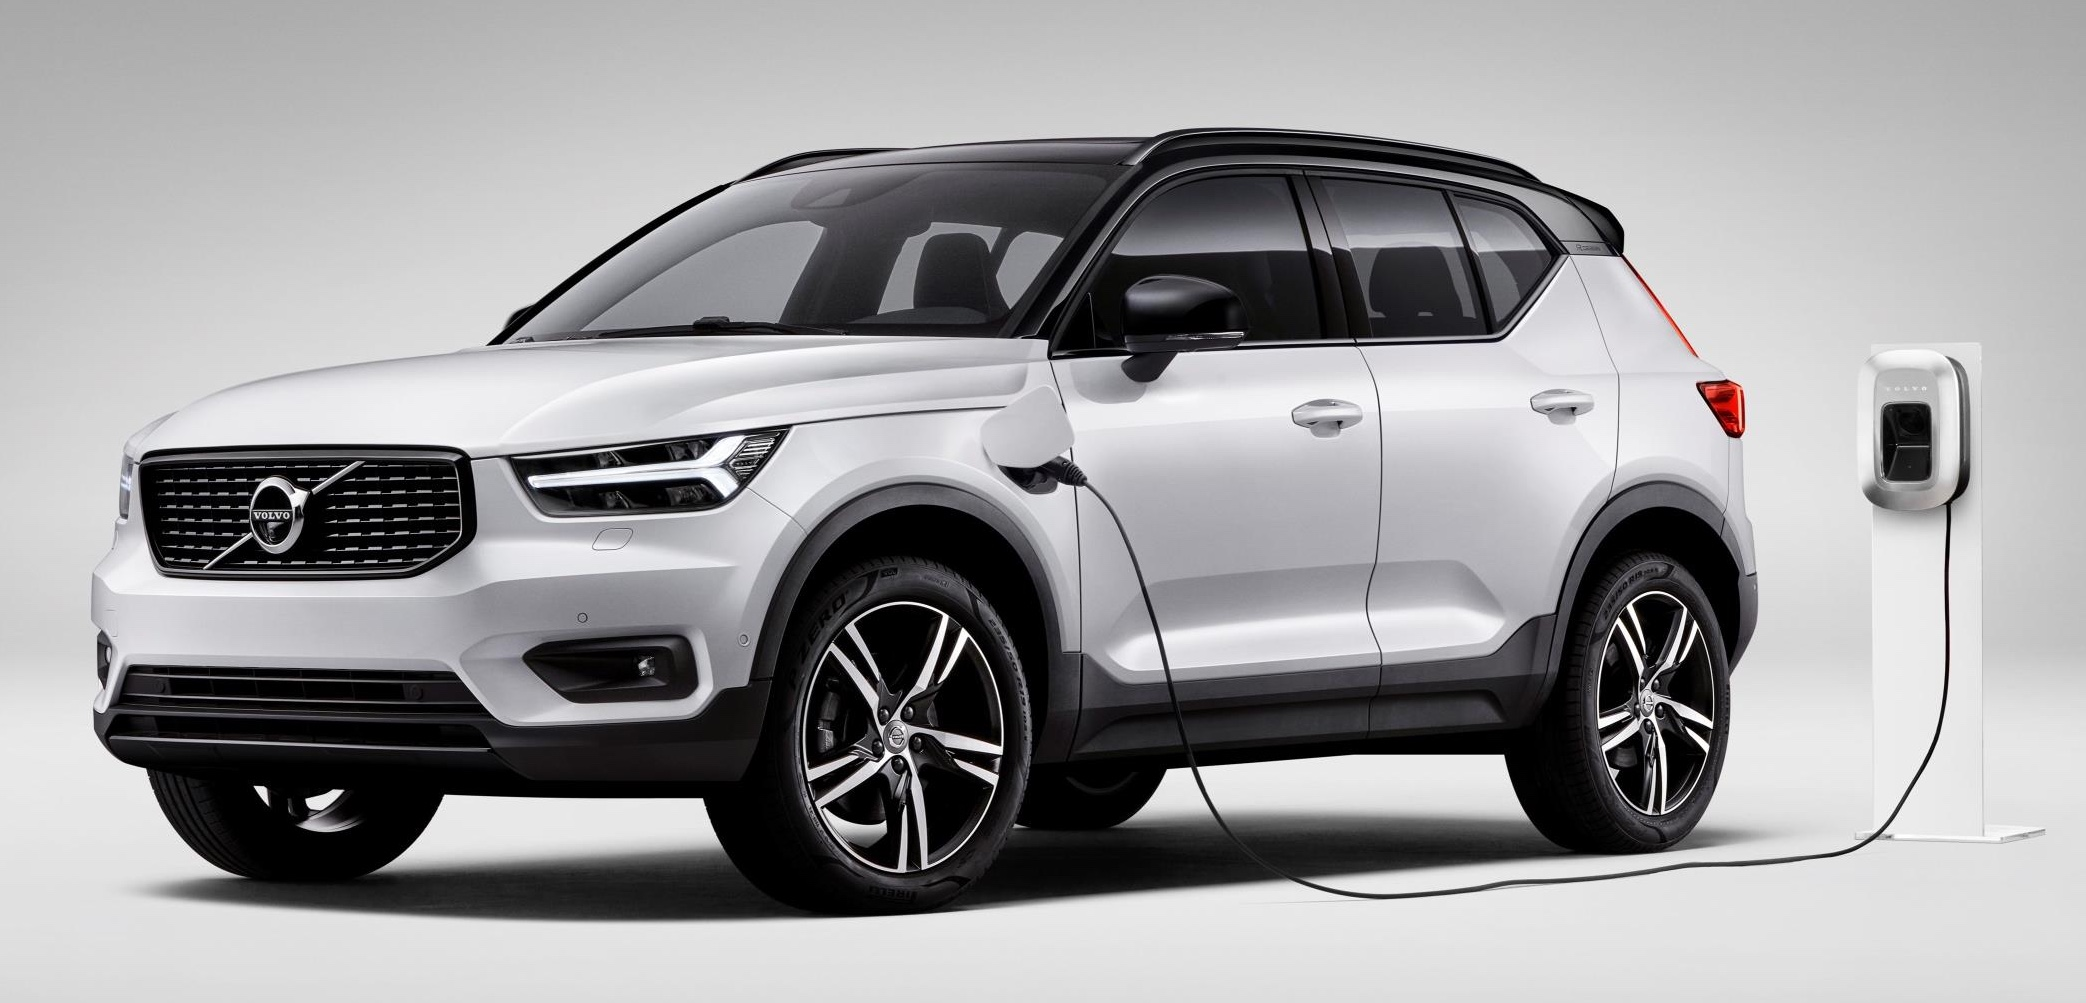 Volvo Car to be first with plug-in hybrids in full range